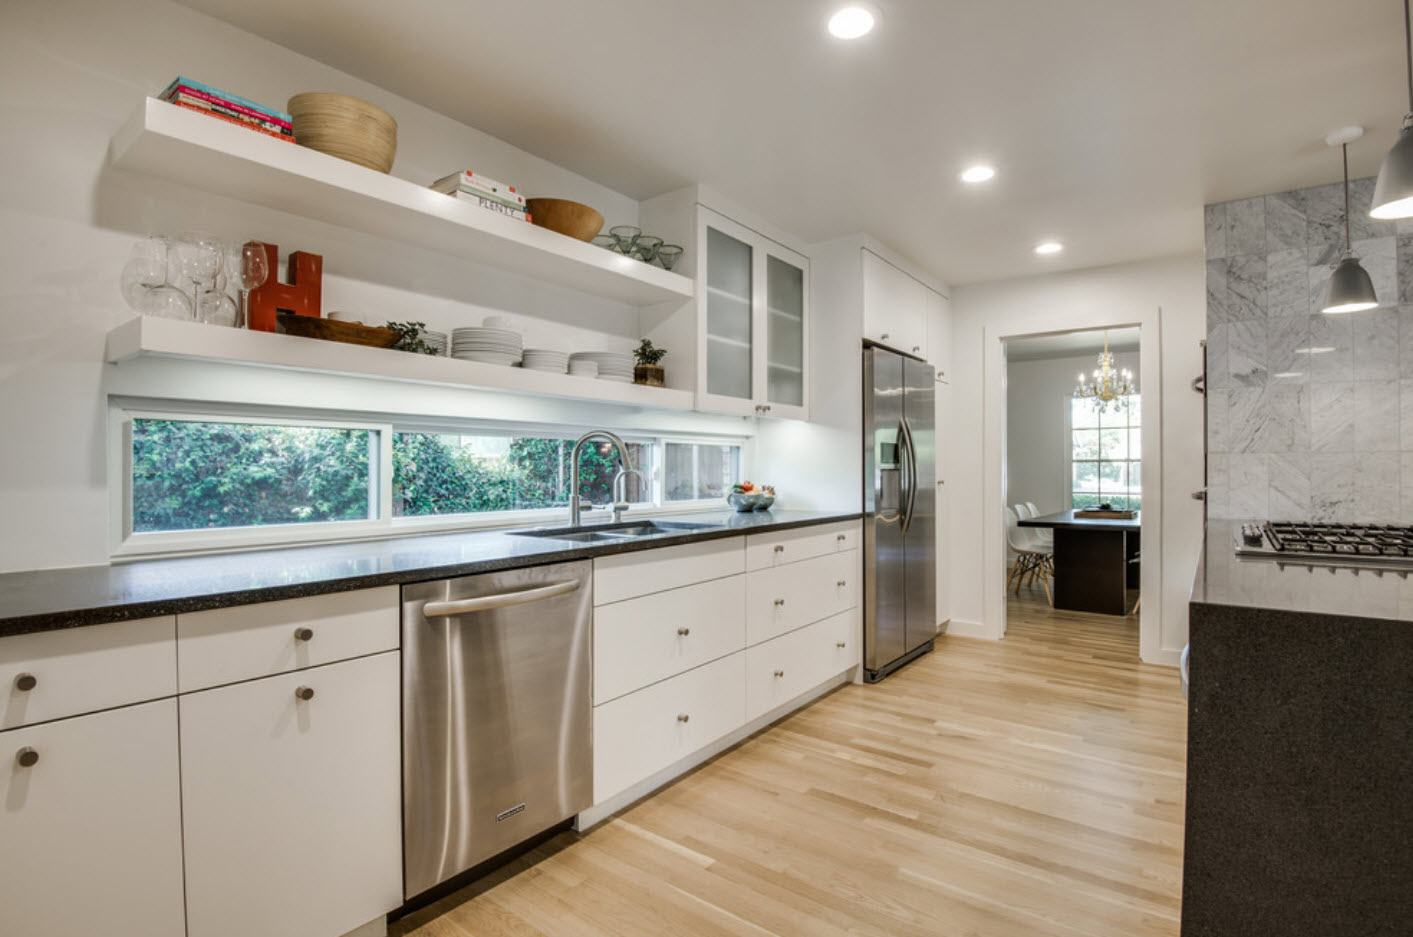 Minimalistic design of the galley kitchen with steel surface